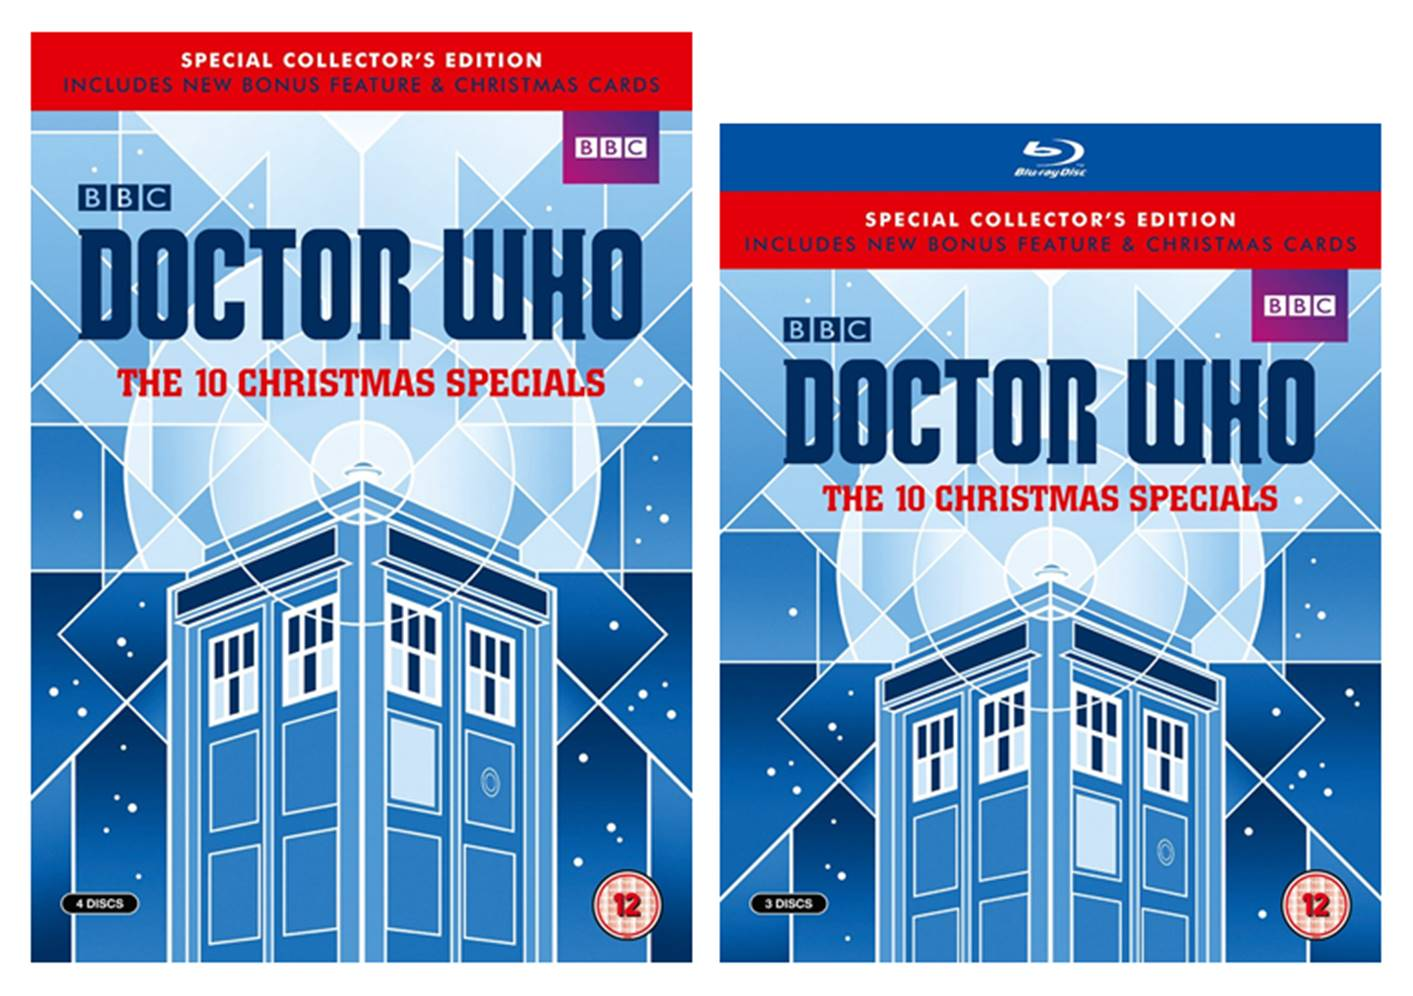 Doctor Who Christmas Cards.The Ultimate Doctor Who Site The 10 Christmas Specials Dvd Blu